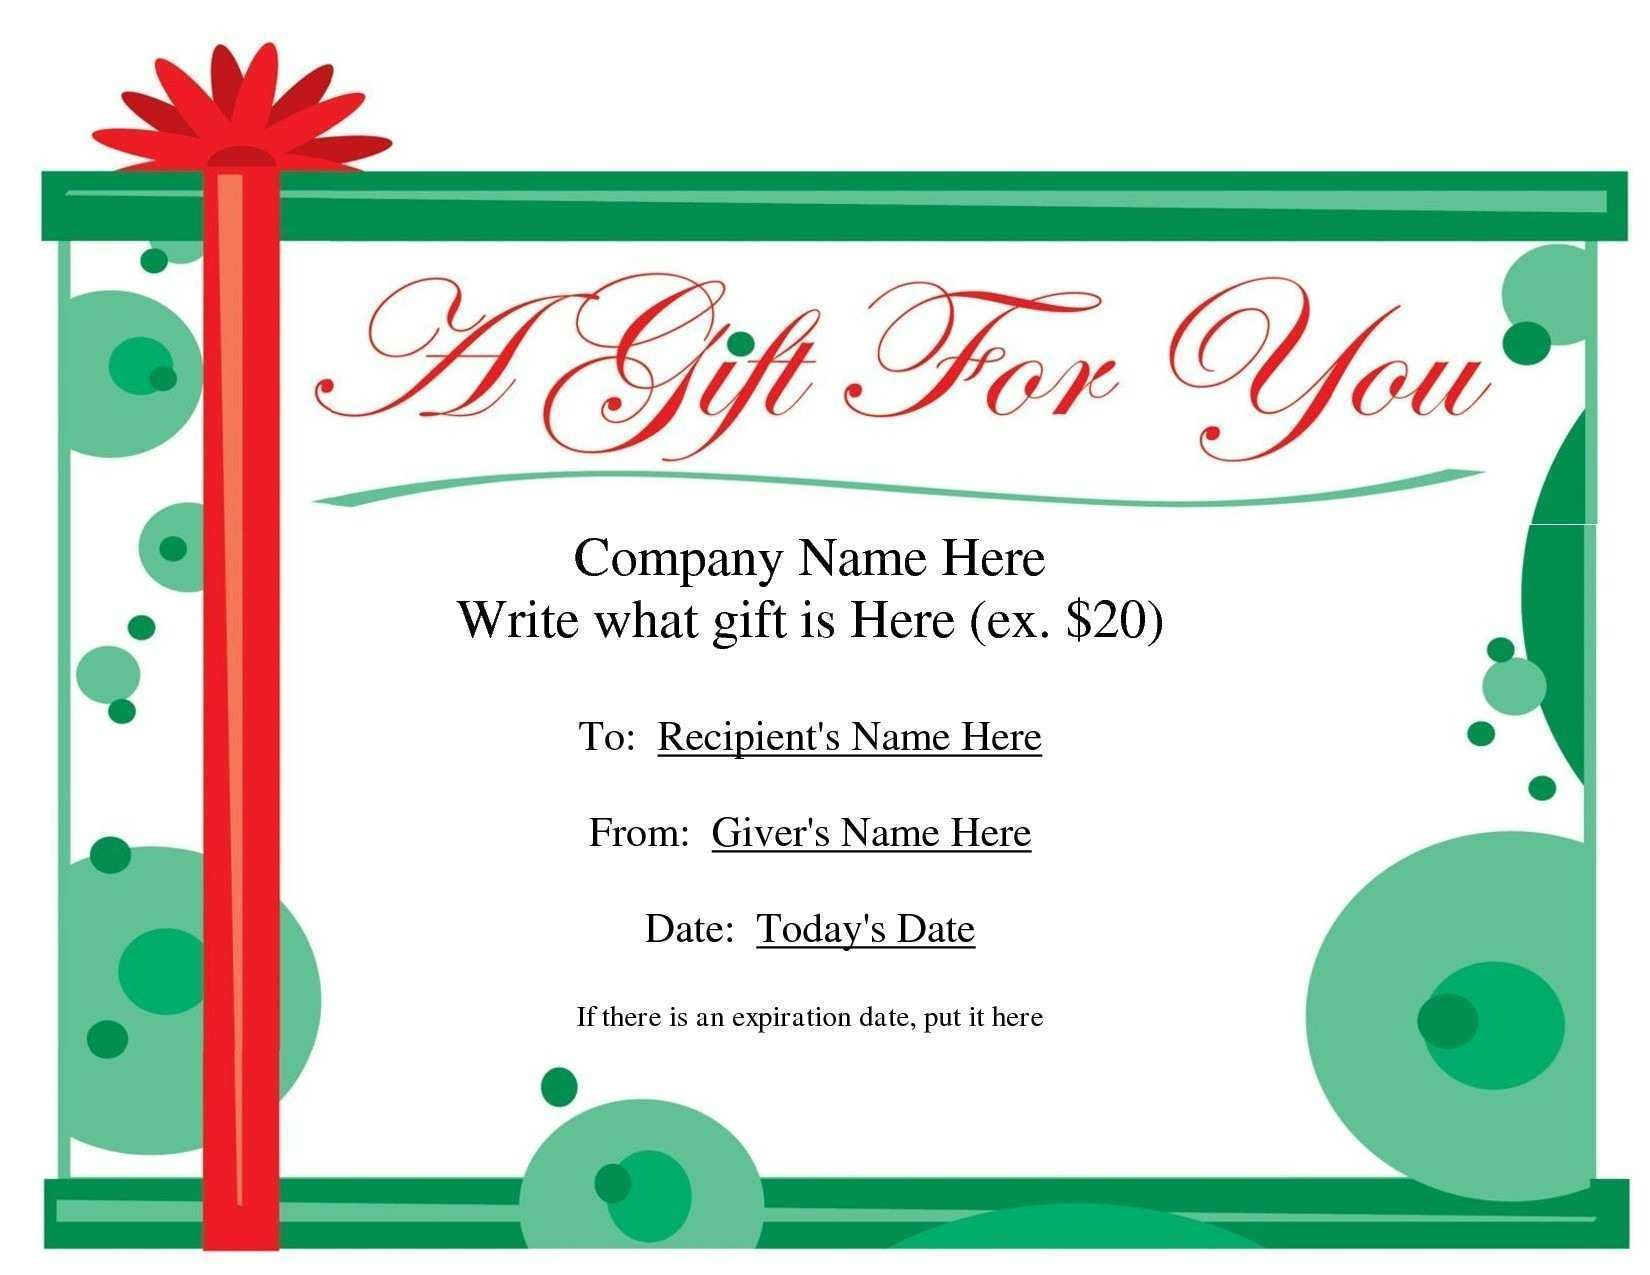 52 Visiting Christmas Gift Card Template Microsoft Word in Word for Christmas Gift Card Template Microsoft Word